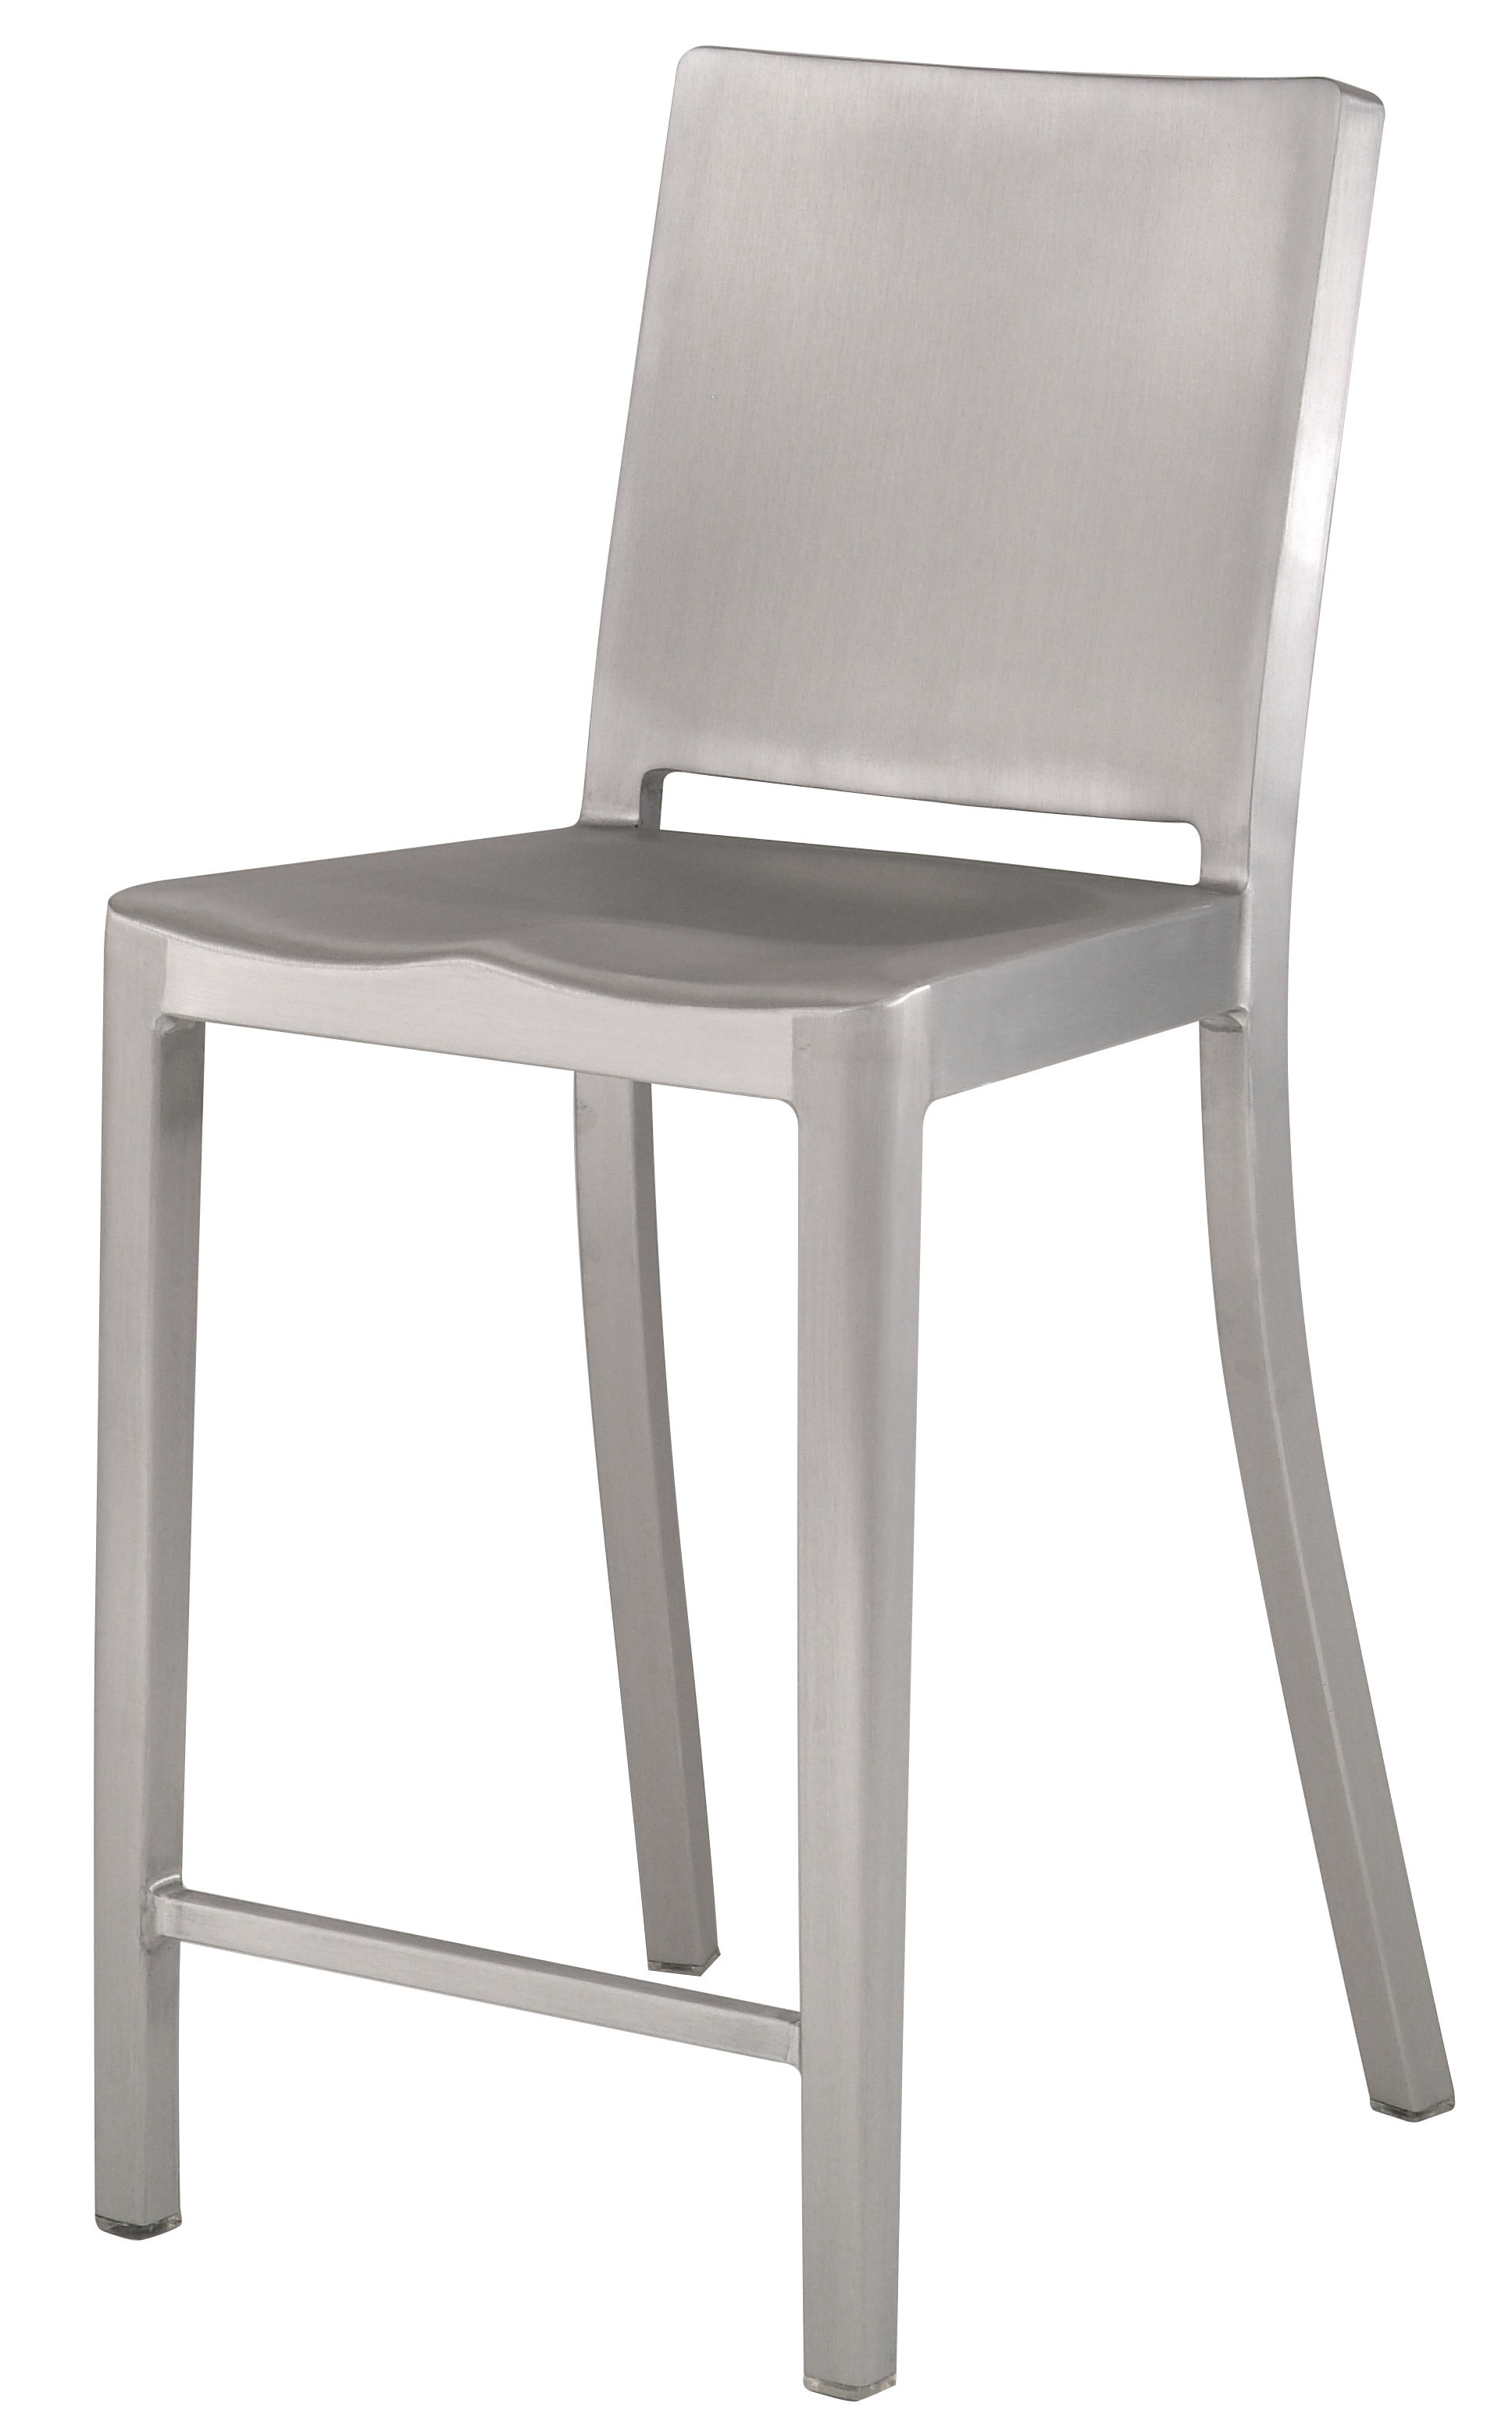 Furniture - Bar Stools - Hudson Outdoor Bar chair - H 61 cm - Metal by Emeco - Brushed aluminium - Recycled brushed aluminium